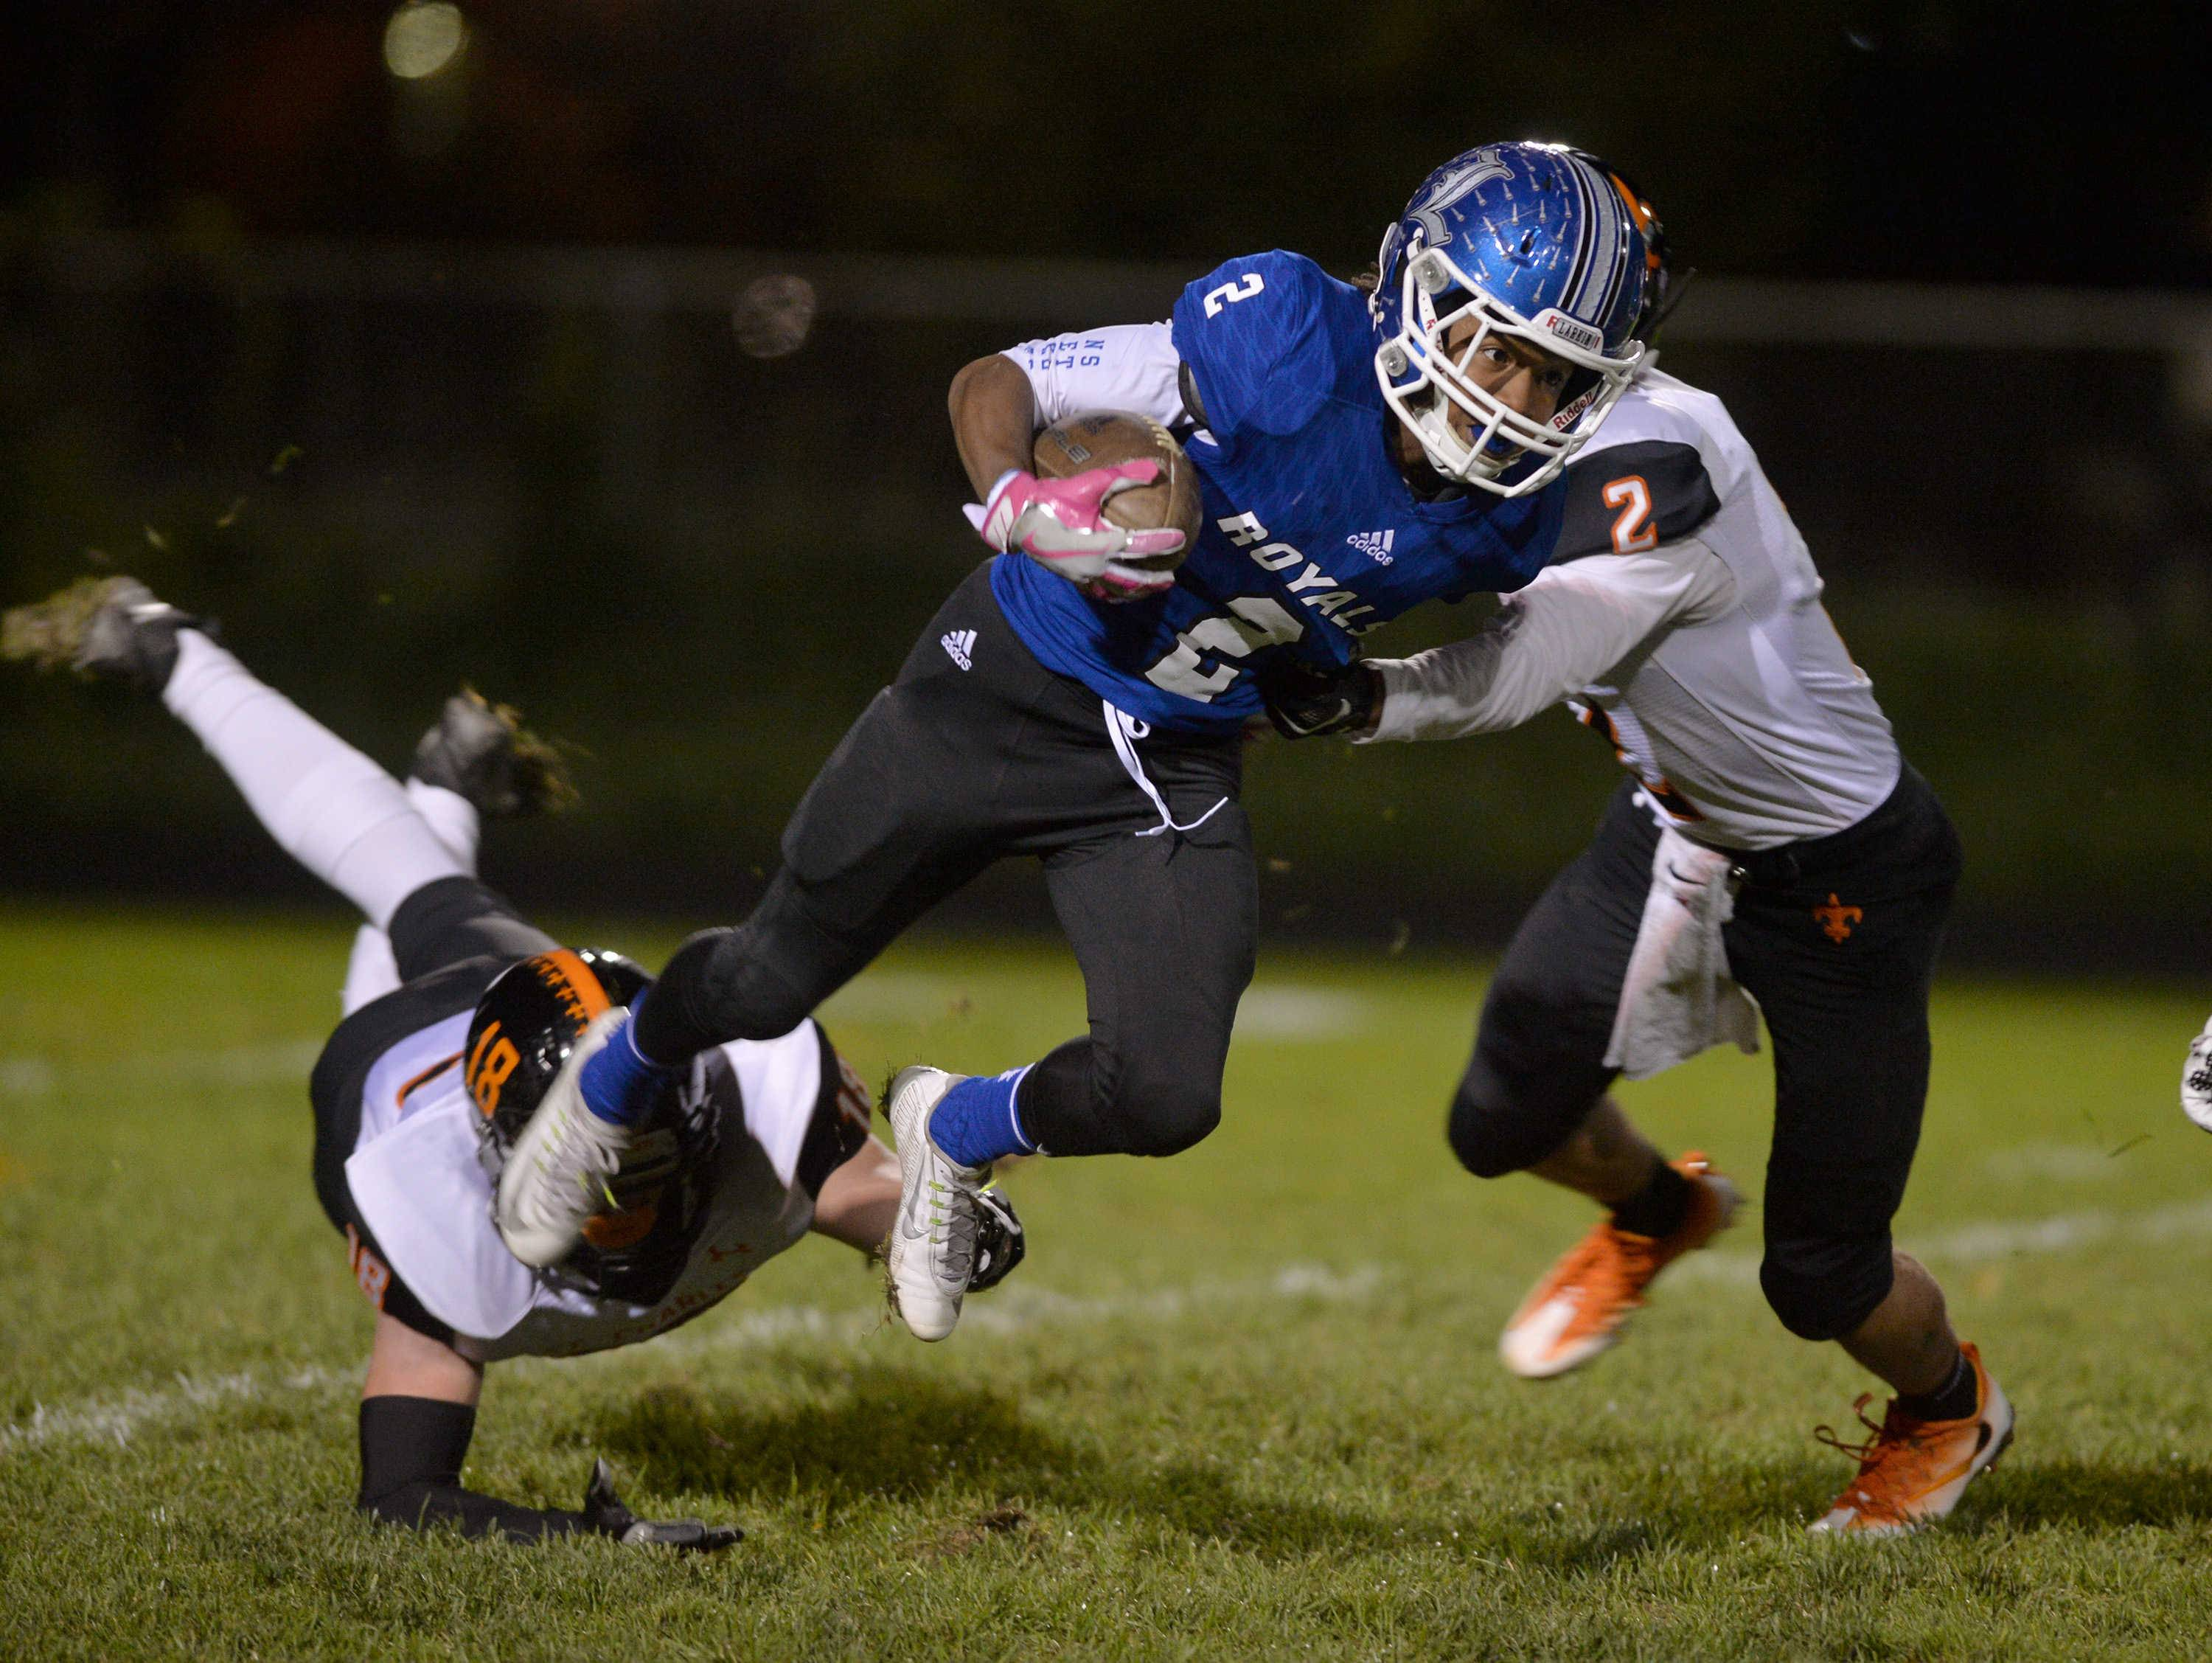 Larkin's Morris Kindrel fights for extra yardage on a return as St. Charles East's Stephen Abruzzo, left, and Justin Galante make the stop in the first quarter of their Upstate Eight River contest Friday night at Memorial Field in Elgin.